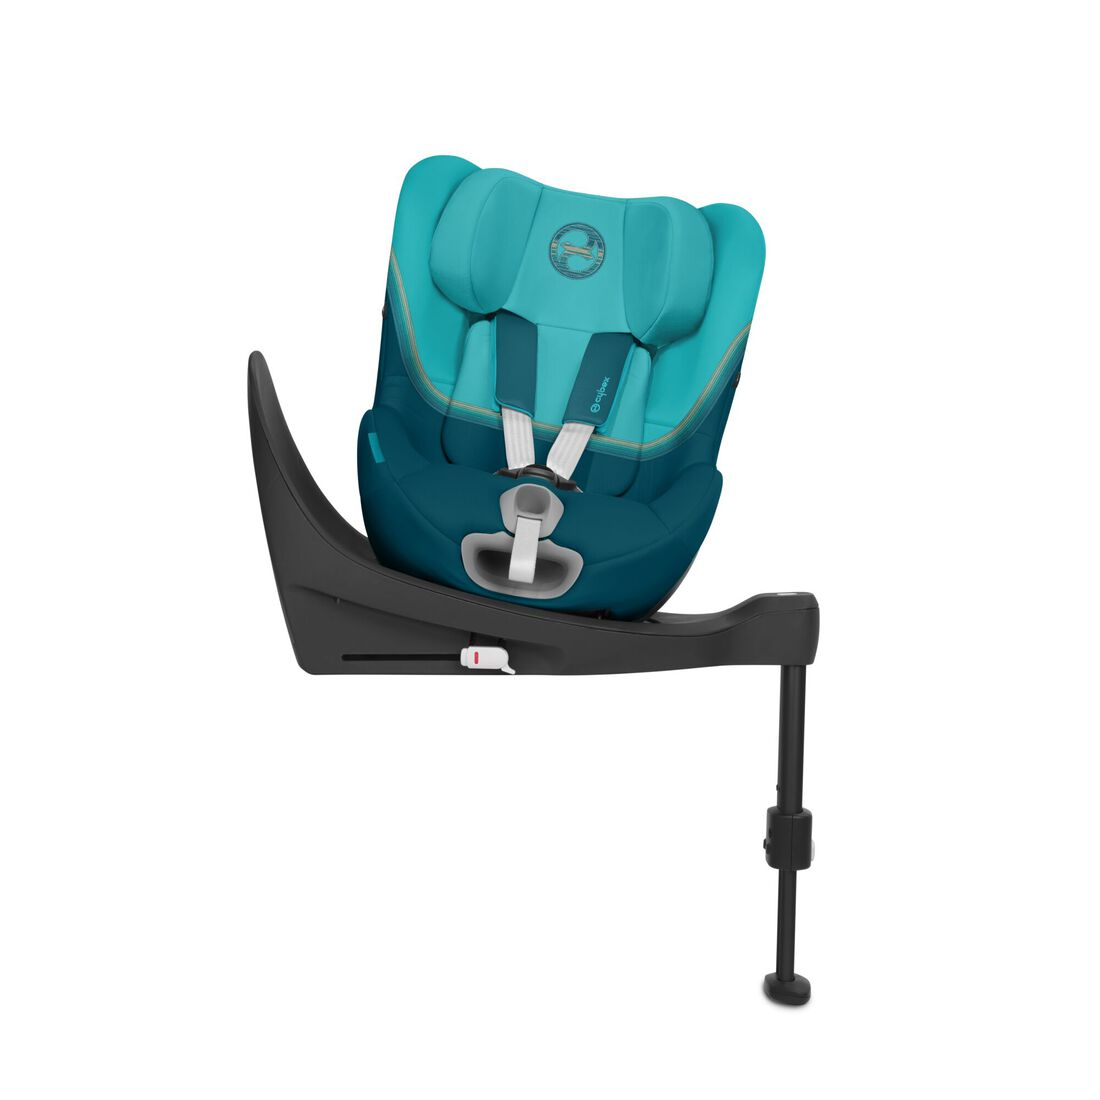 CYBEX Sirona SX2 i-Size - River Blue in River Blue large image number 3